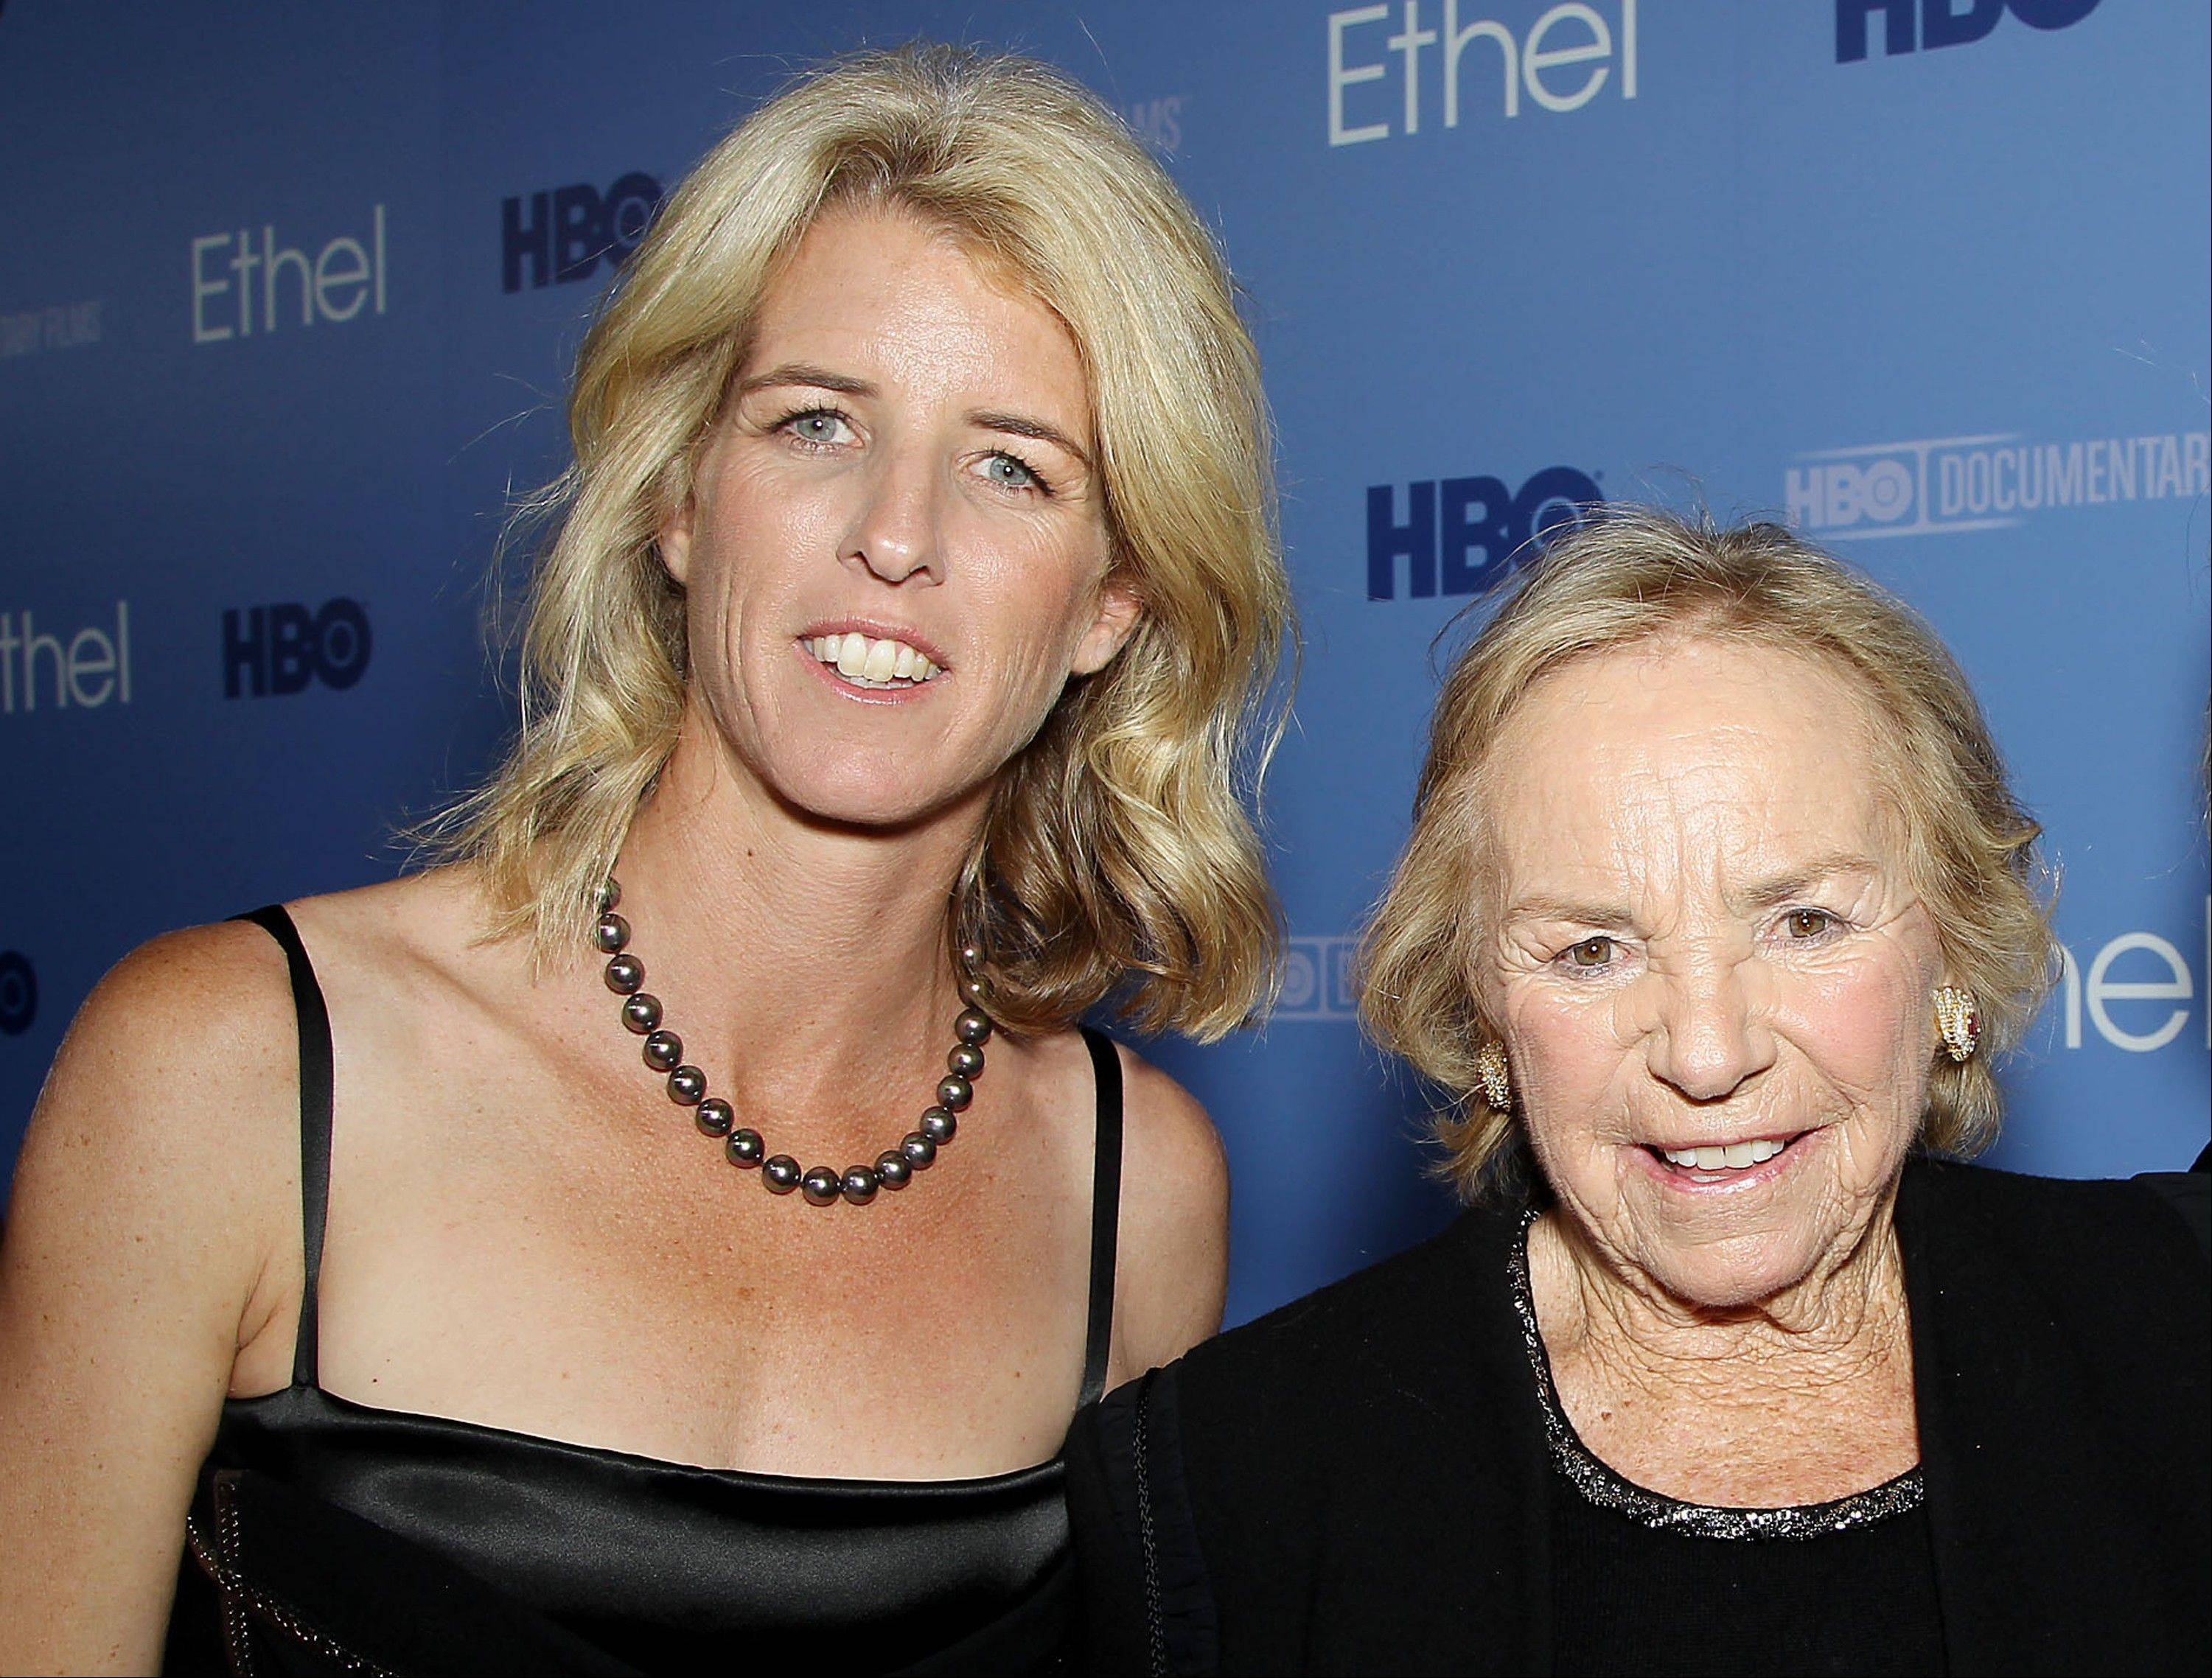 Filmmaker Rory Kennedy, left, and Ethel Kennedy at the premiere for the documentary, �Ethel: A First-Hand Look Inside The Kennedy Family,� in New York. The film, about Ethel Kennedy, wife of the late Robert F. Kennedy, debuts on HBO.